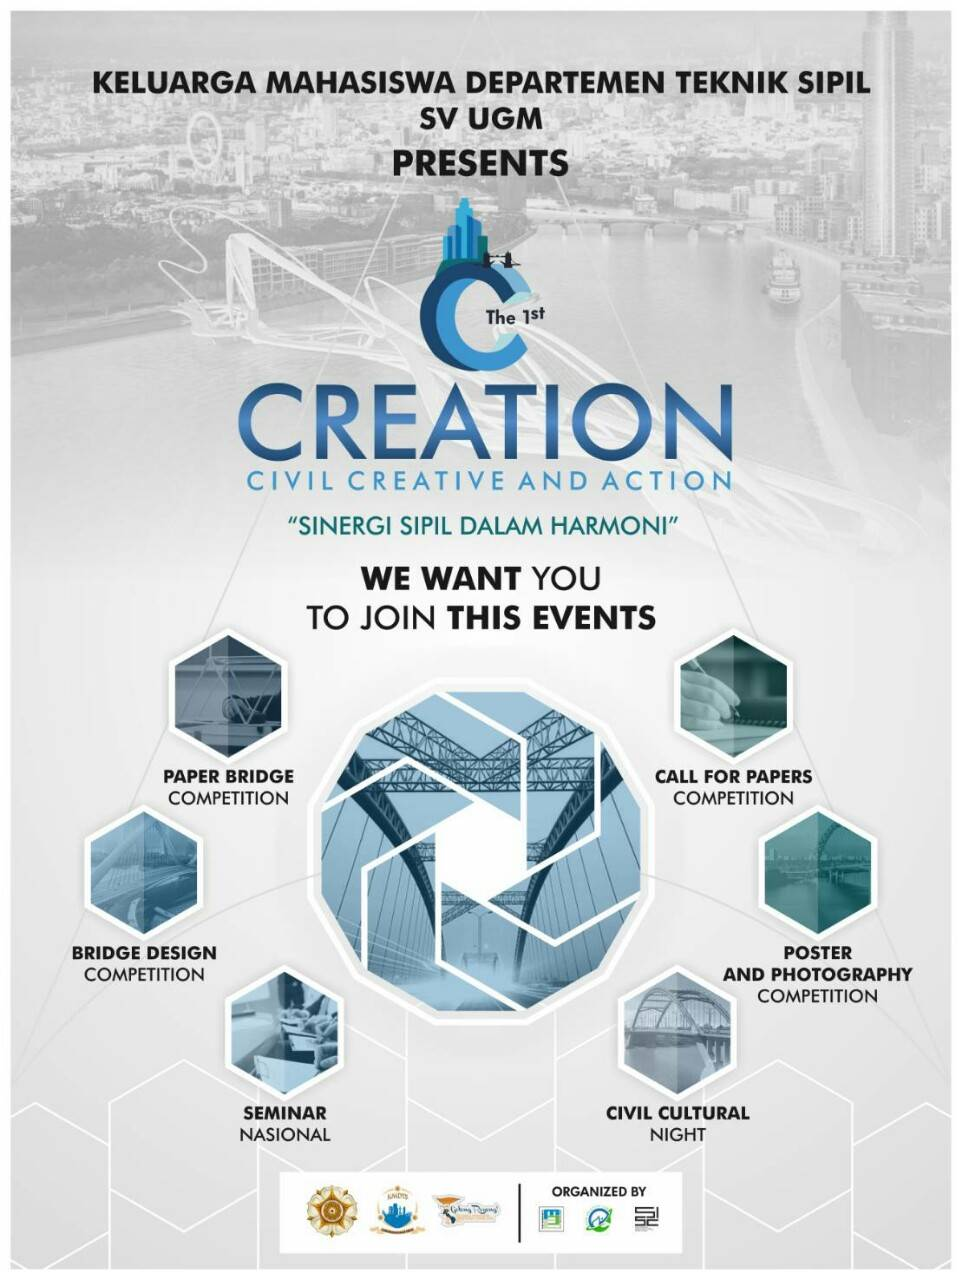 CREATION 2017 [Civil Creative And Action] di UGM